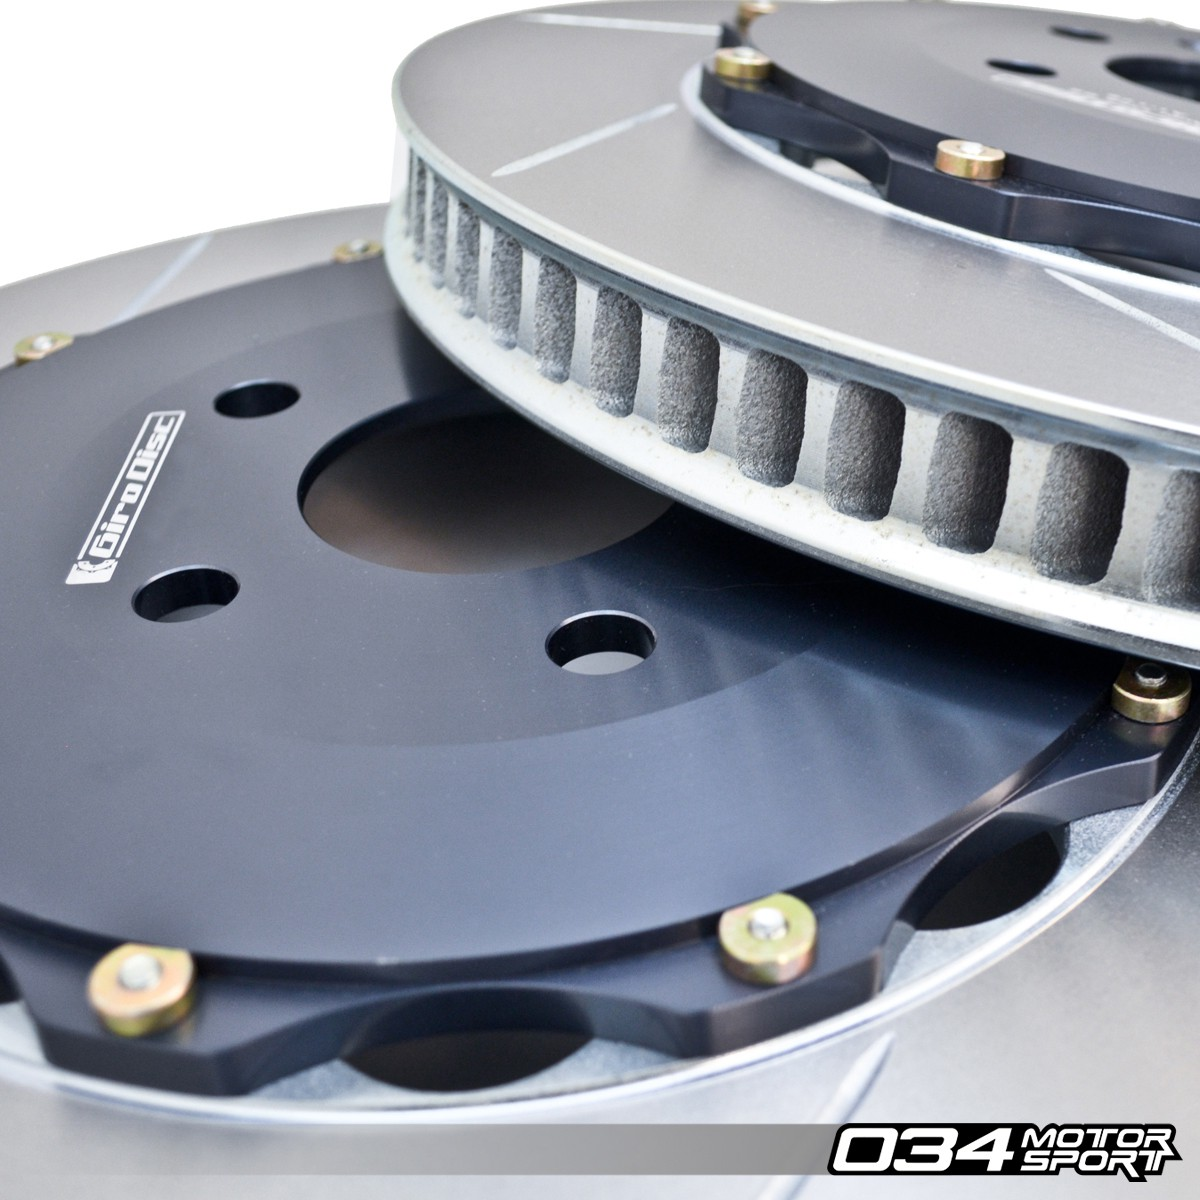 GiroDisc Front 2-Piece Floating Rotor Pair for B5 Audi S4 with Brembo 18Z 6-Piston Caliper | GIR-A1-120